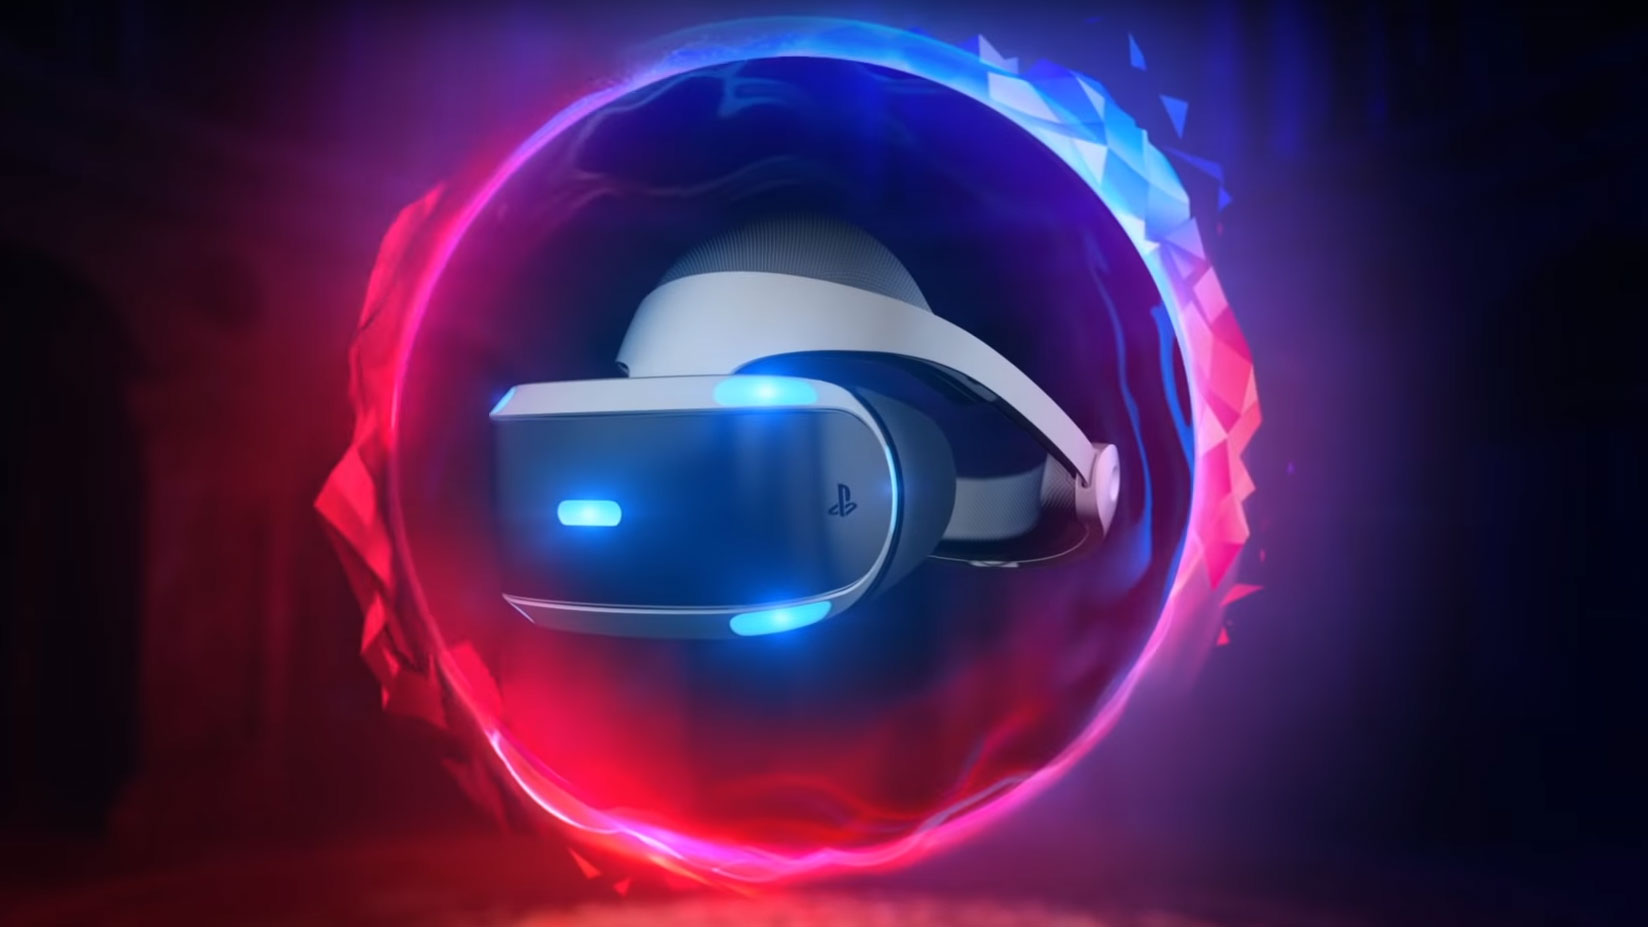 PSVR 2 for PS5? Sony is working on a new VR headset